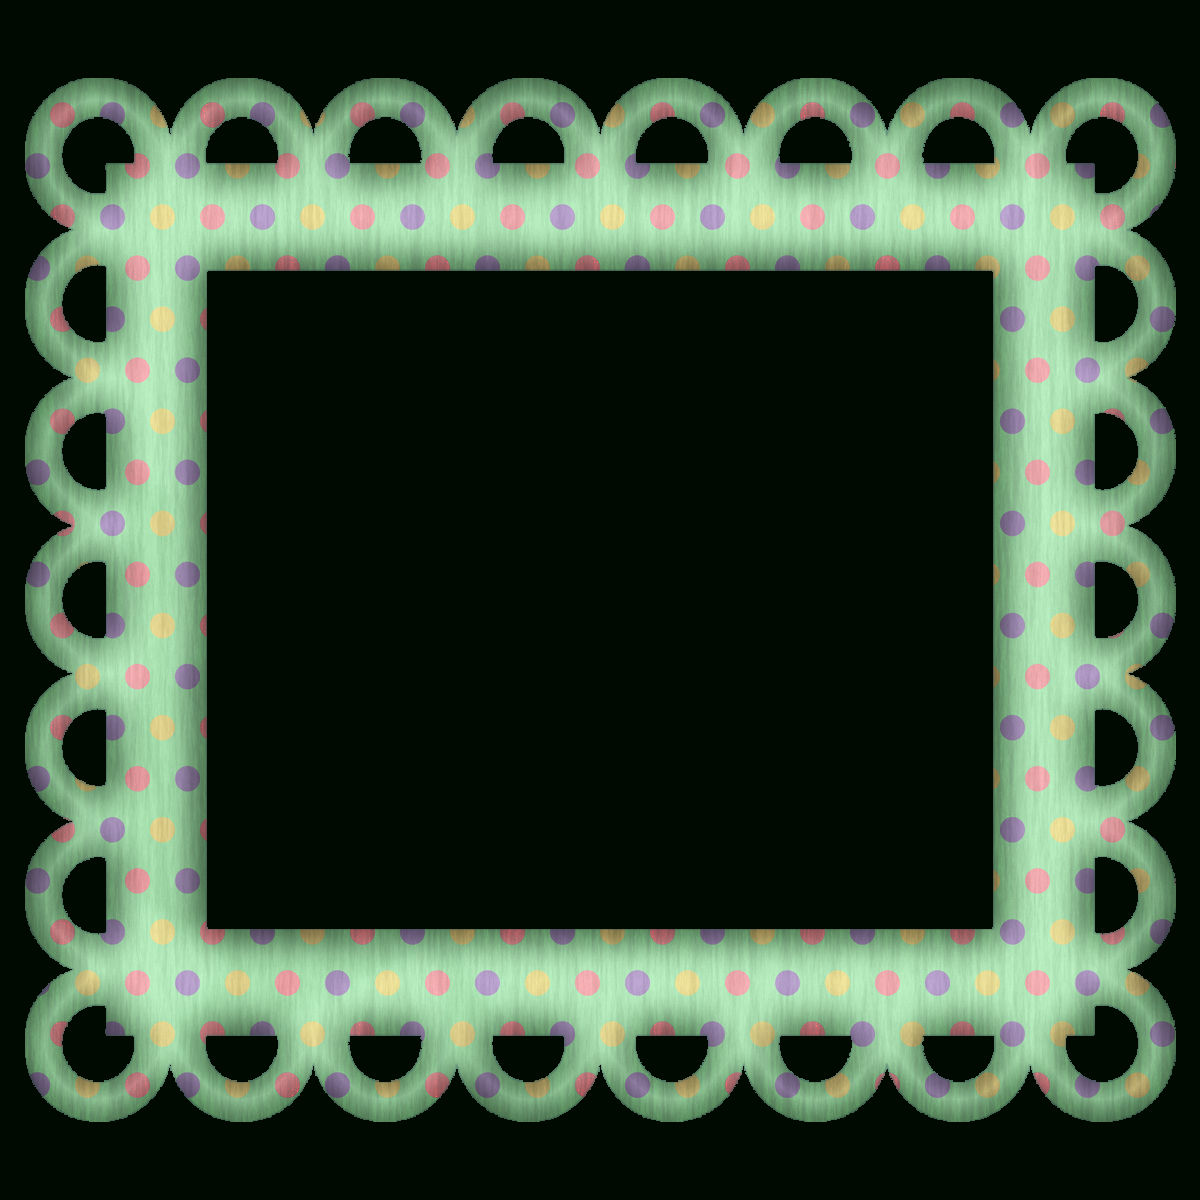 Picture Frames For Scrapbooking Free | Free Green Polka Digi - Free Printable Frames For Scrapbooking